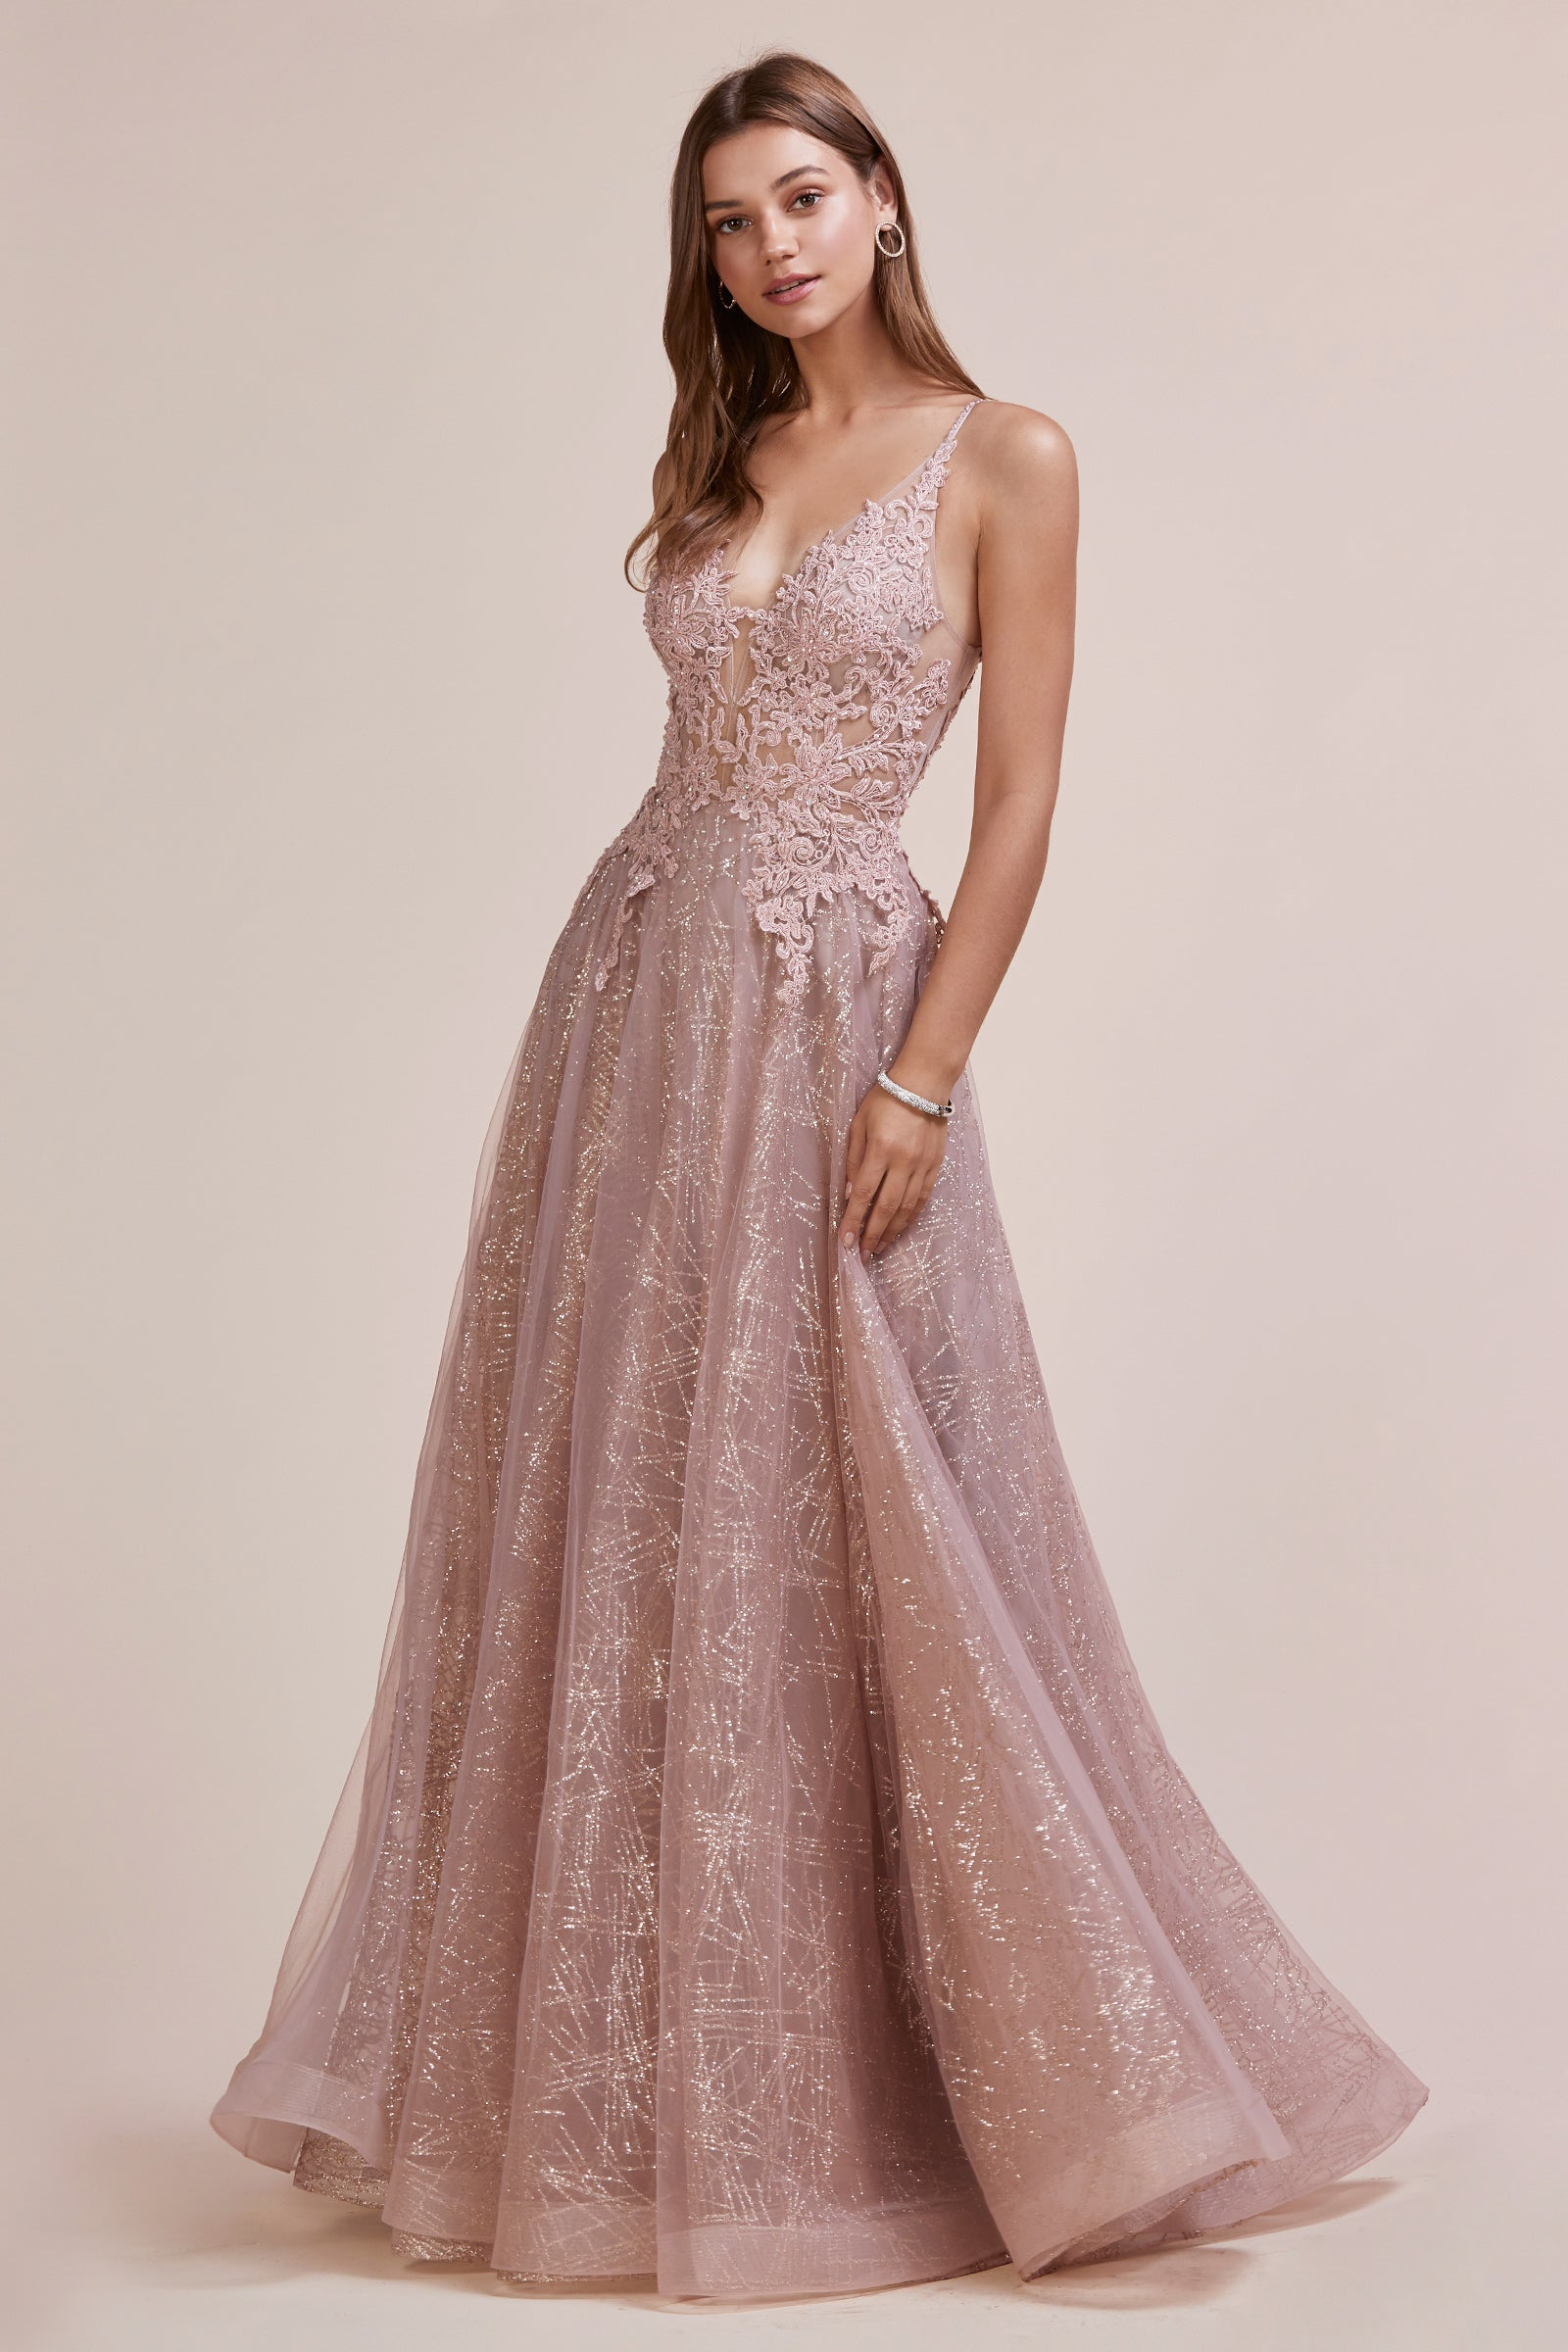 446a03d28c49c Andrea and Leo A0681 Rose Gold lace and glitter tulle long evening ...